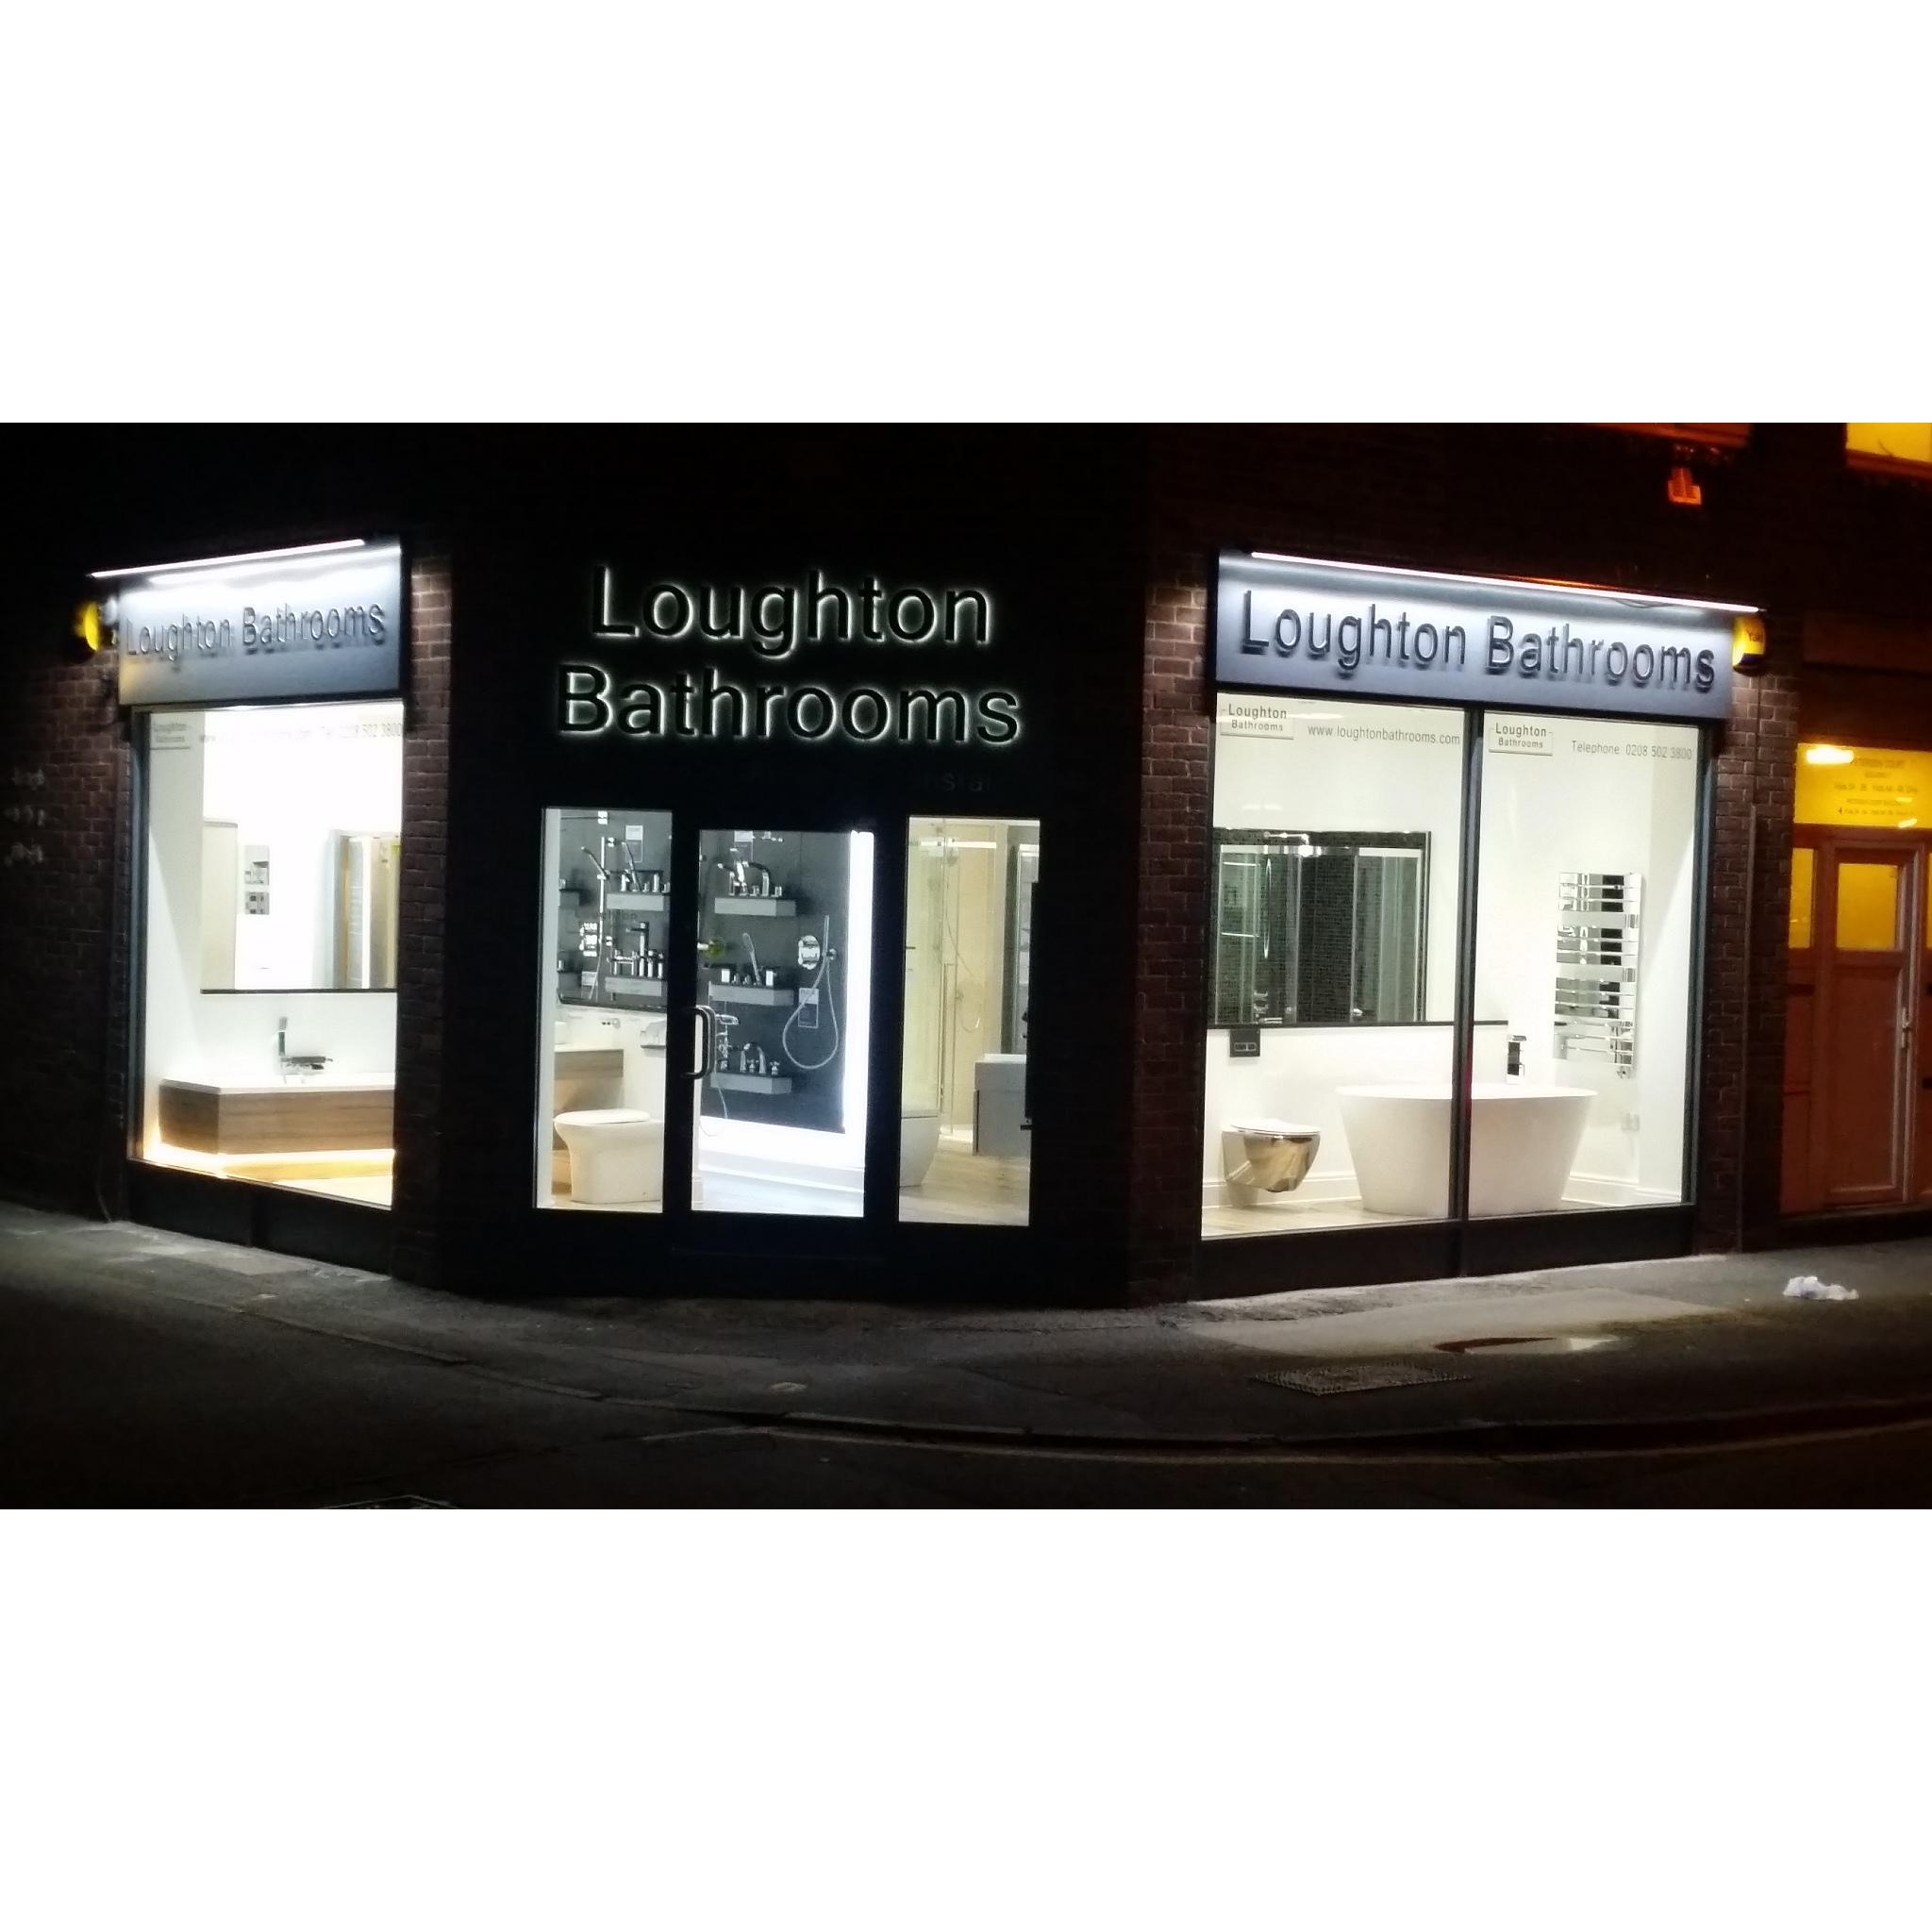 Loughton Bathrooms - Loughton, Essex IG10 2RS - 020 8502 3800 | ShowMeLocal.com